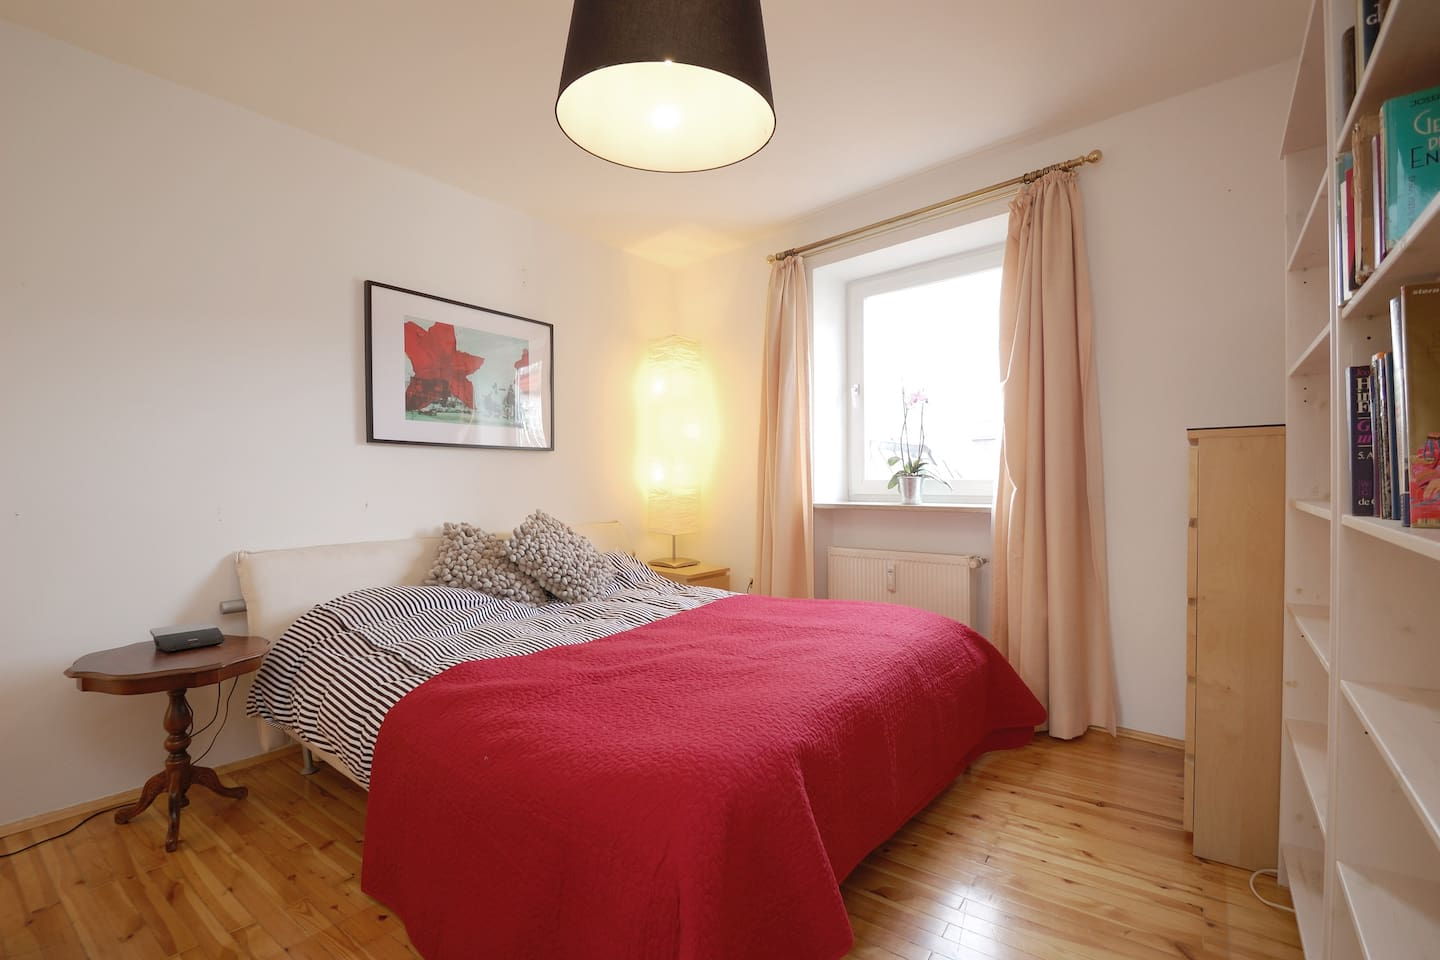 Bright and large bedroom with 200 x 200 cm bed